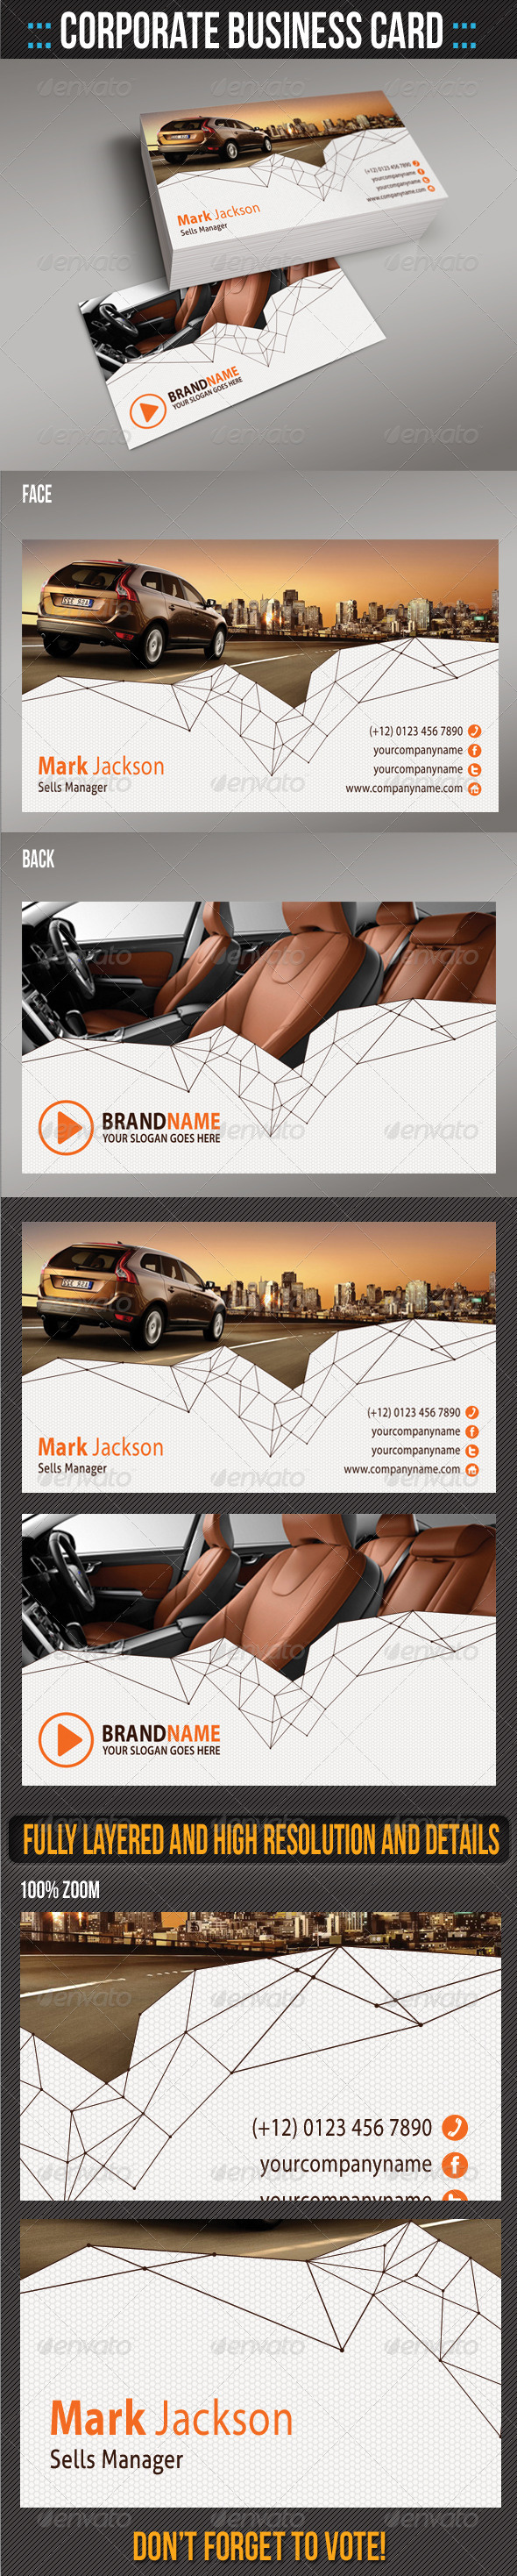 GraphicRiver Corporate Business Card 06 6451902